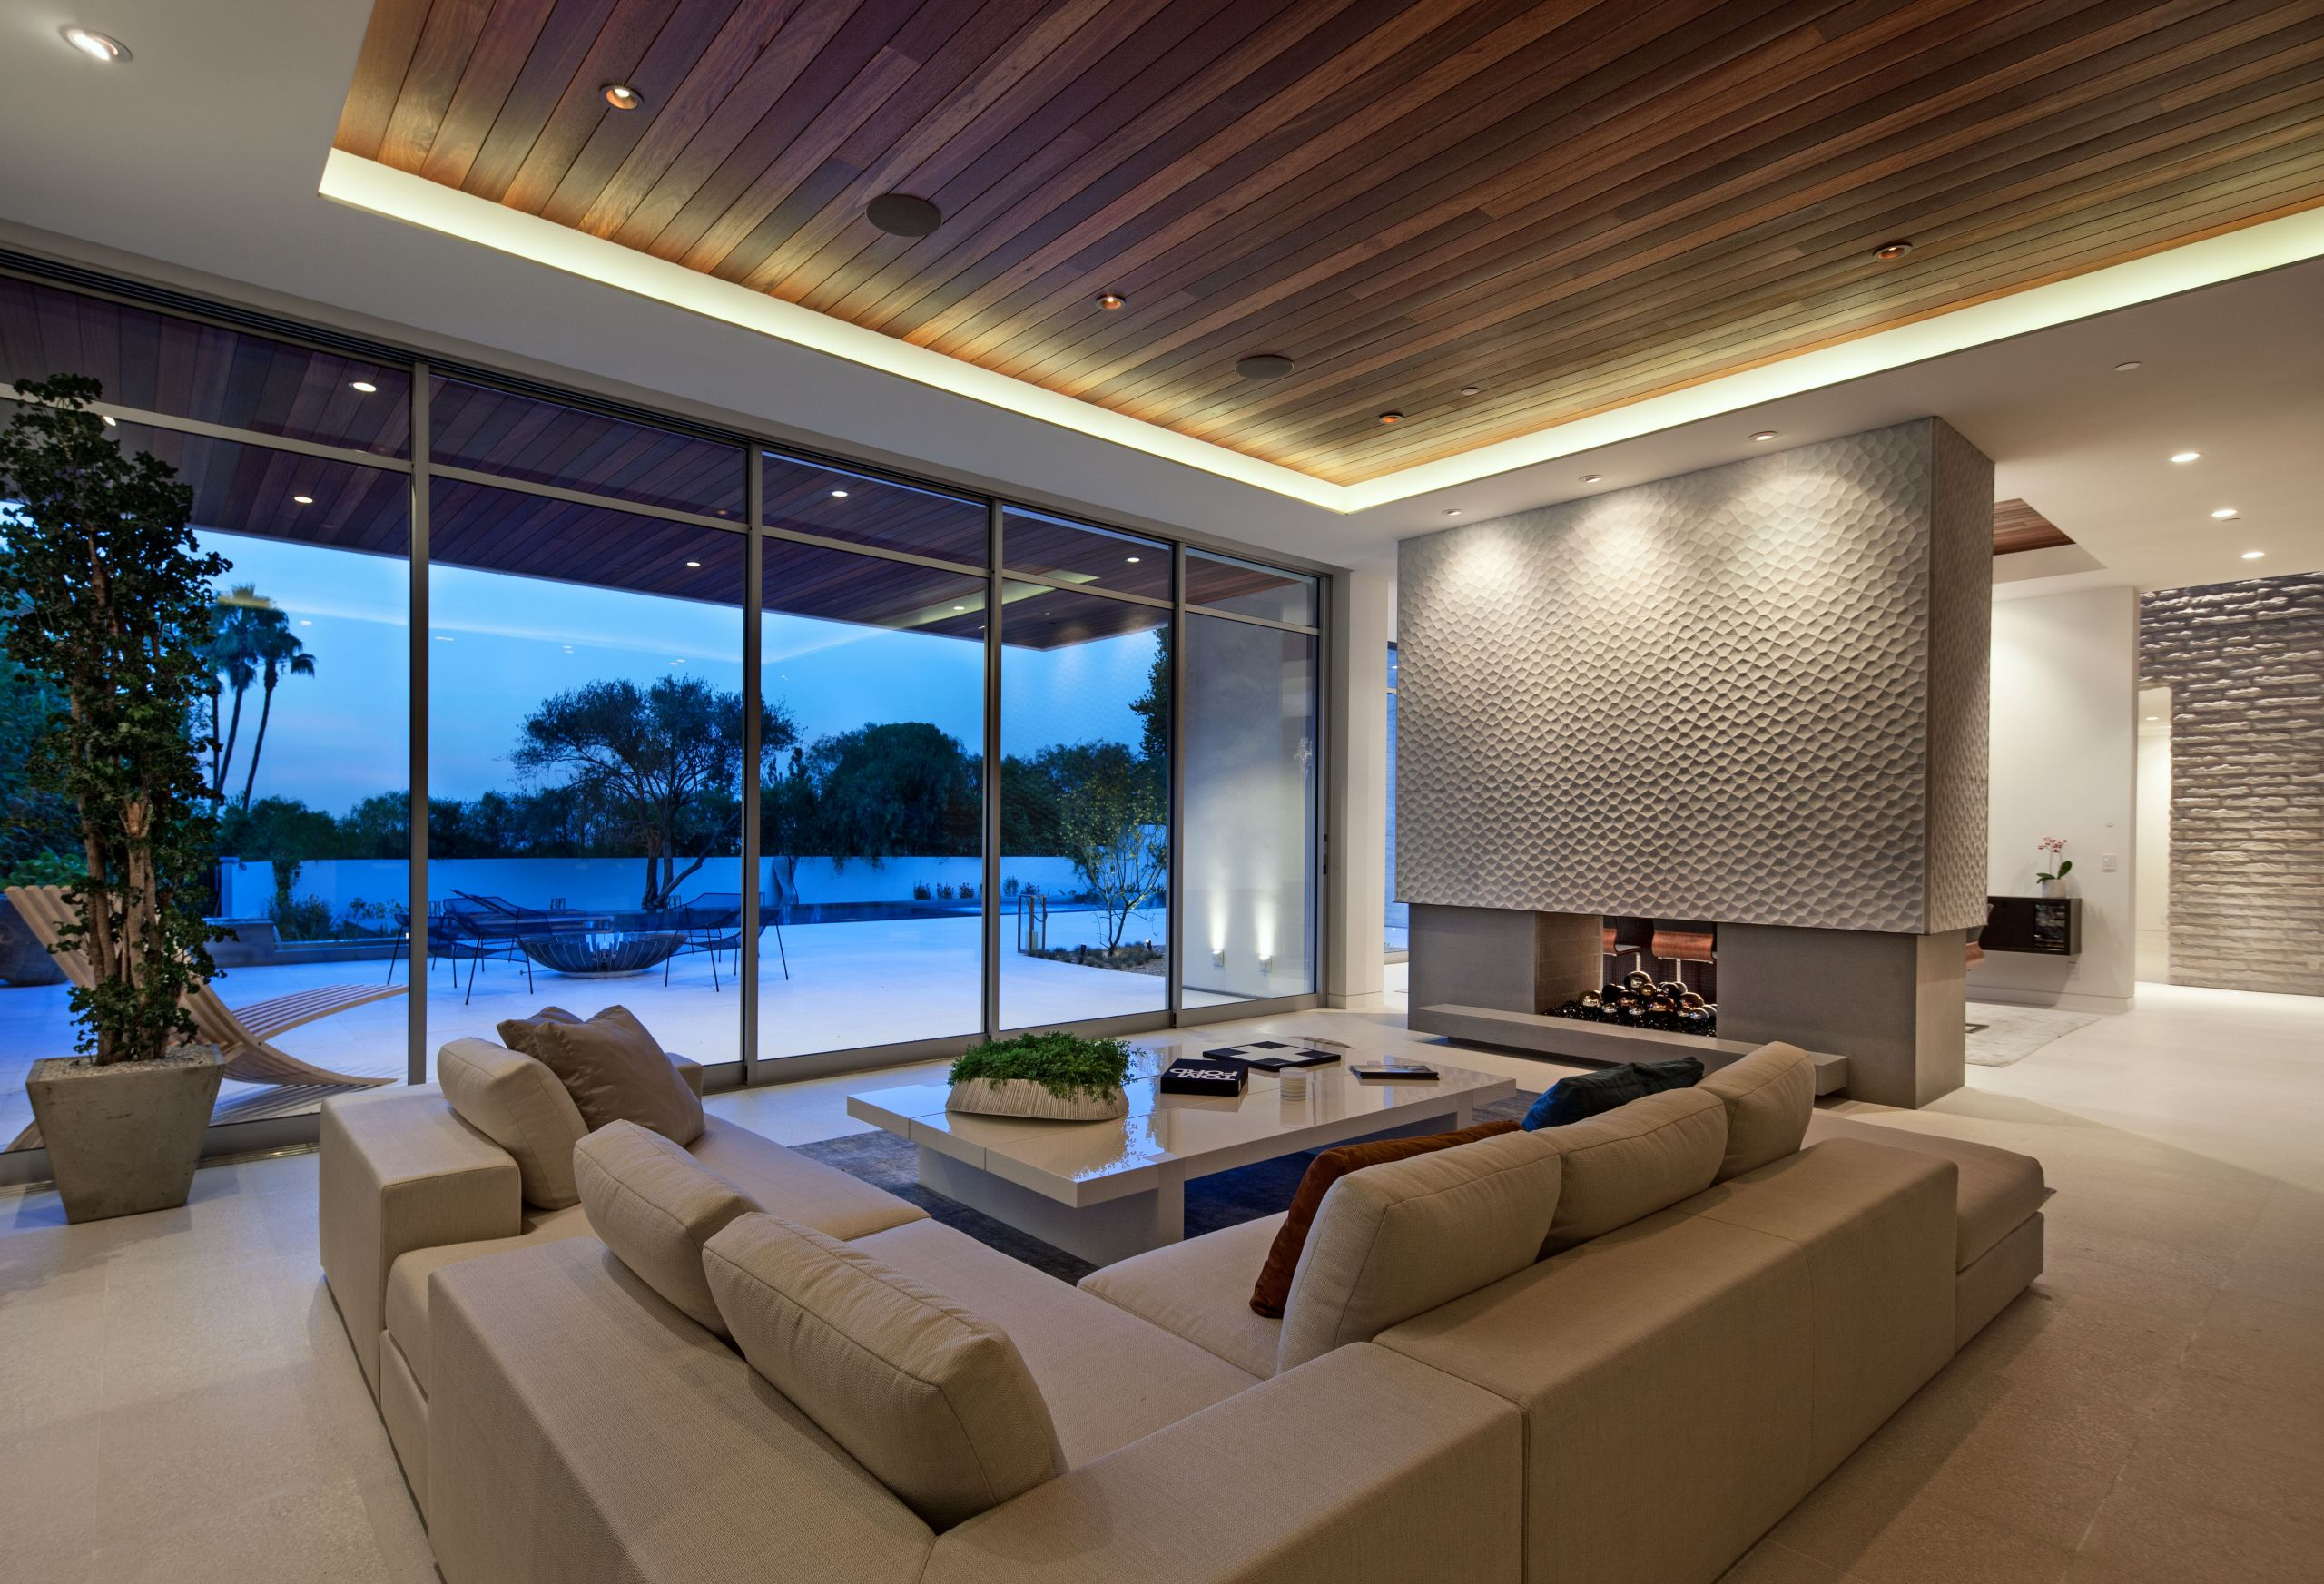 Modern Luxury Living Room  Contemporary Architecture and Interiors on Sunset Strip